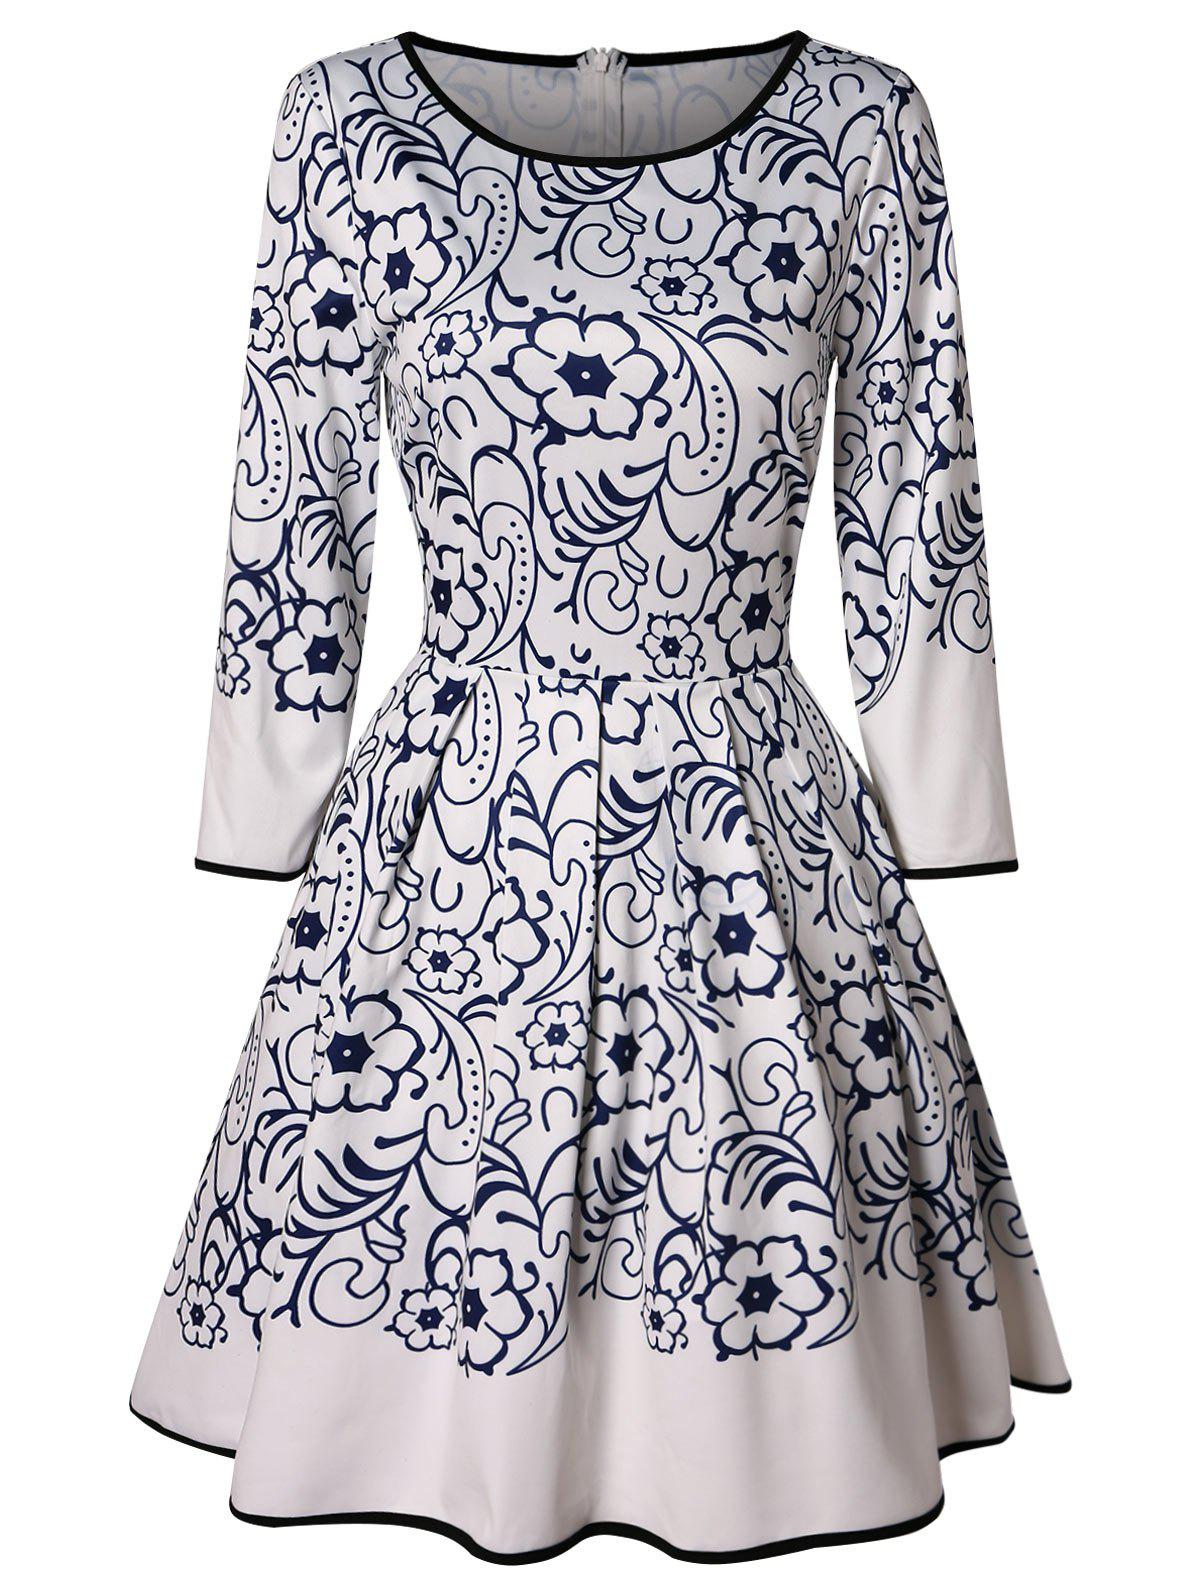 Fashion Vintage Floral Print Mini Flared Dress